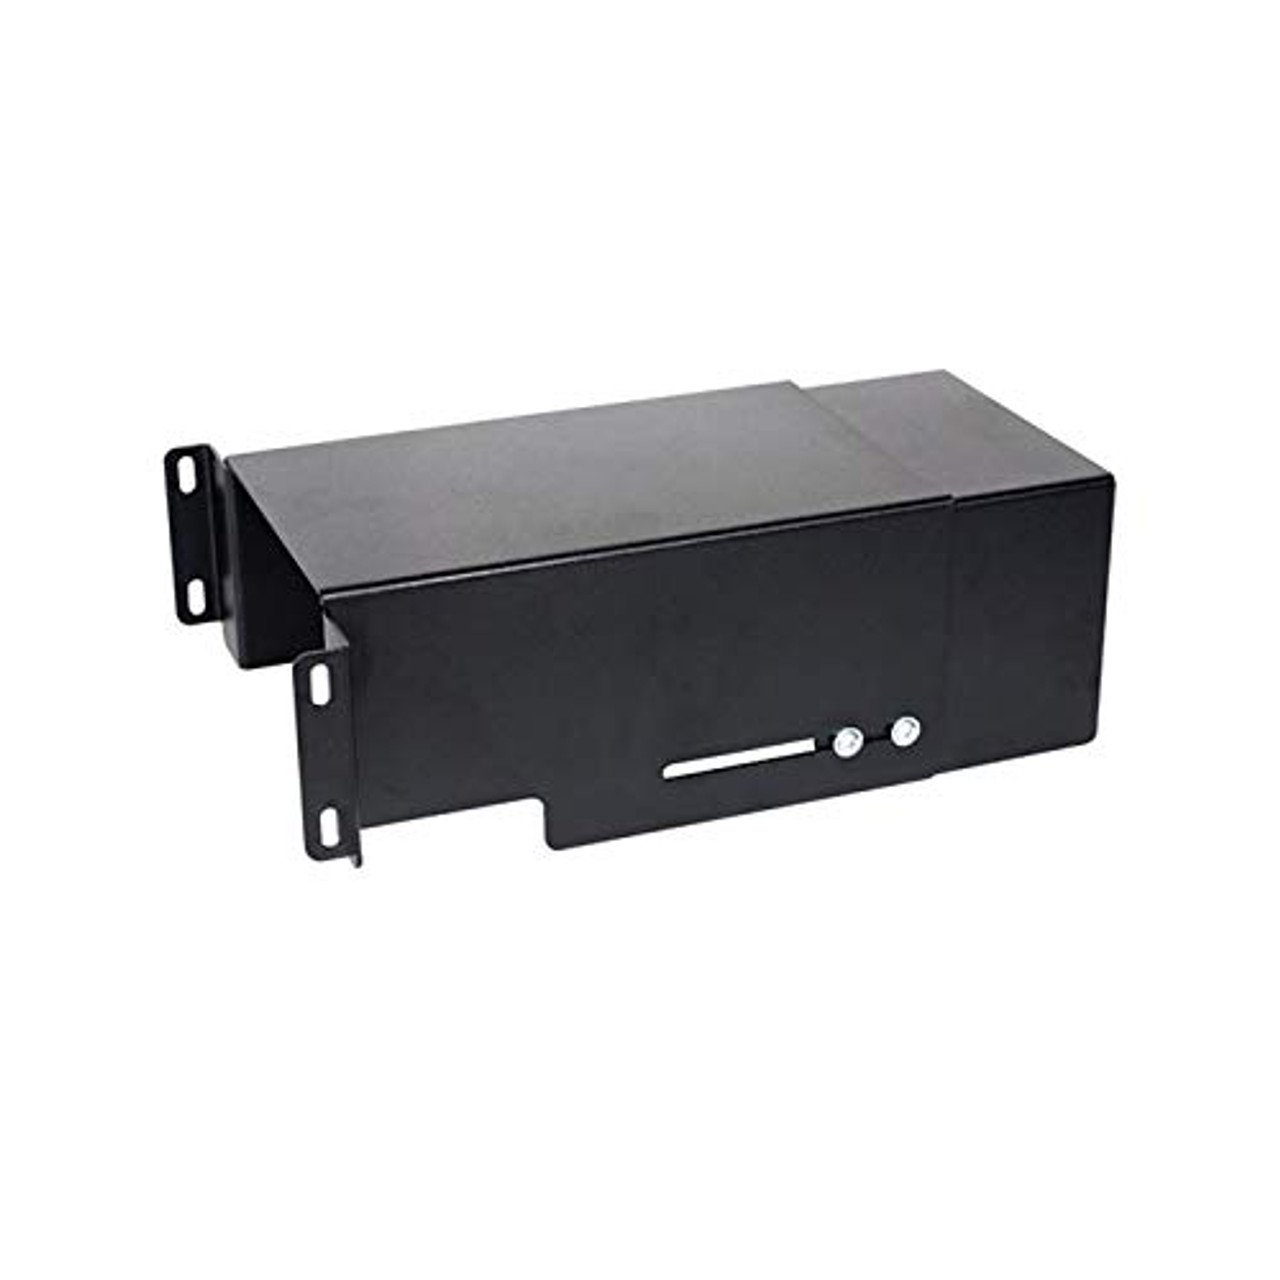 Cable/Wire Chase Tahoe Console Box (Silverado Truck) | 0309X8QH4ON